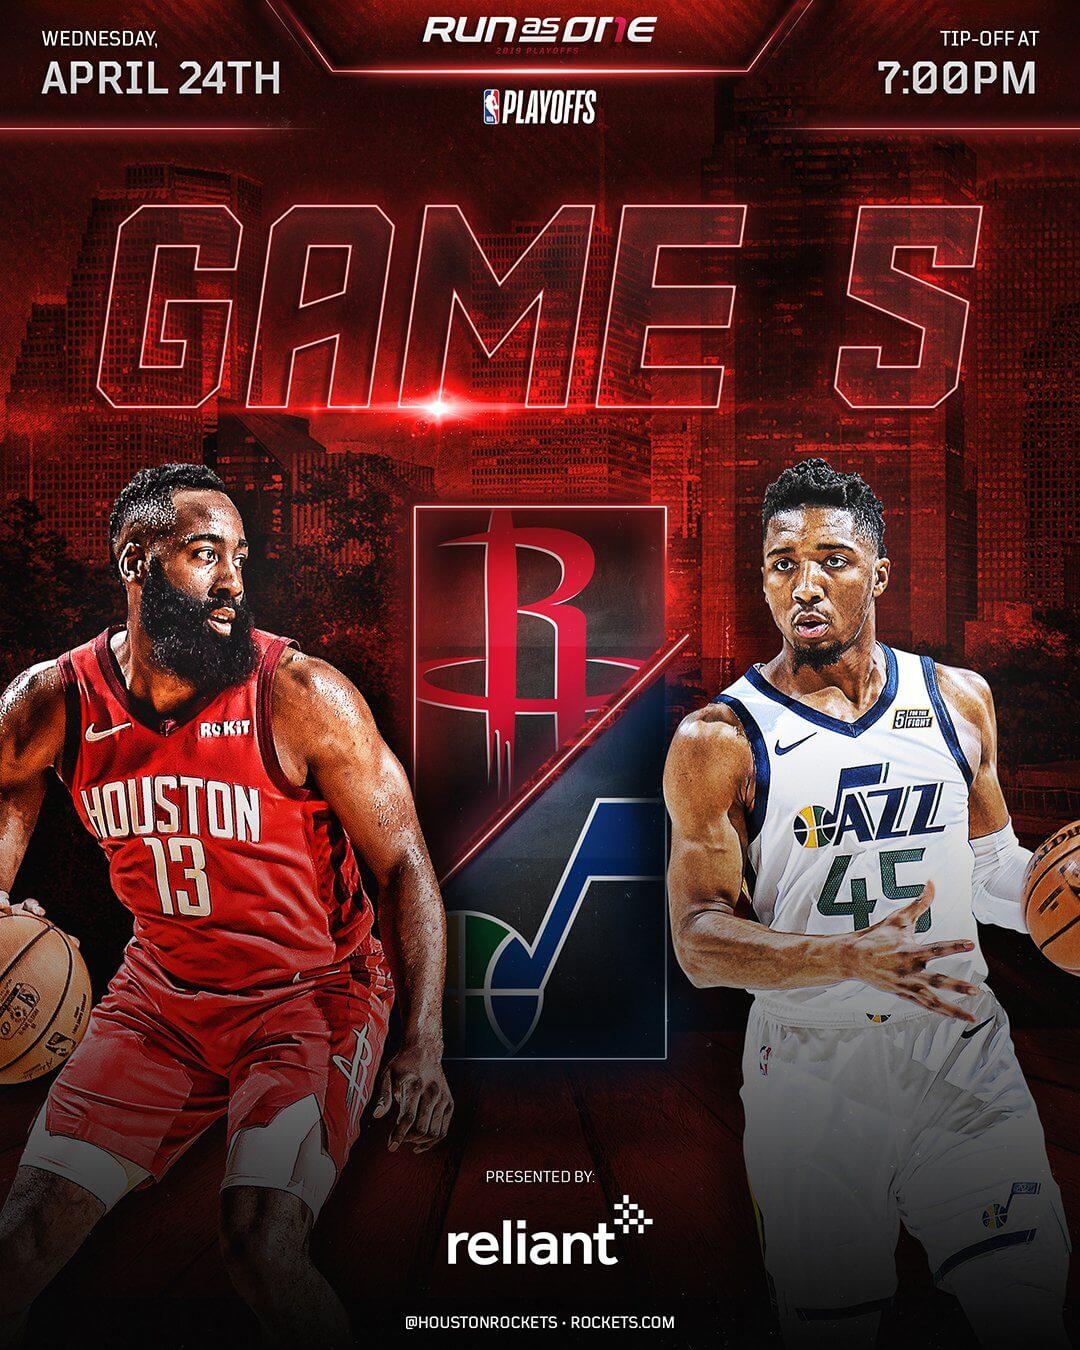 Houston Rockets Where To Watch The Upcoming Match Espn: Flipboard: Rockets-Warriors: Game Time, Odds, Schedule, TV